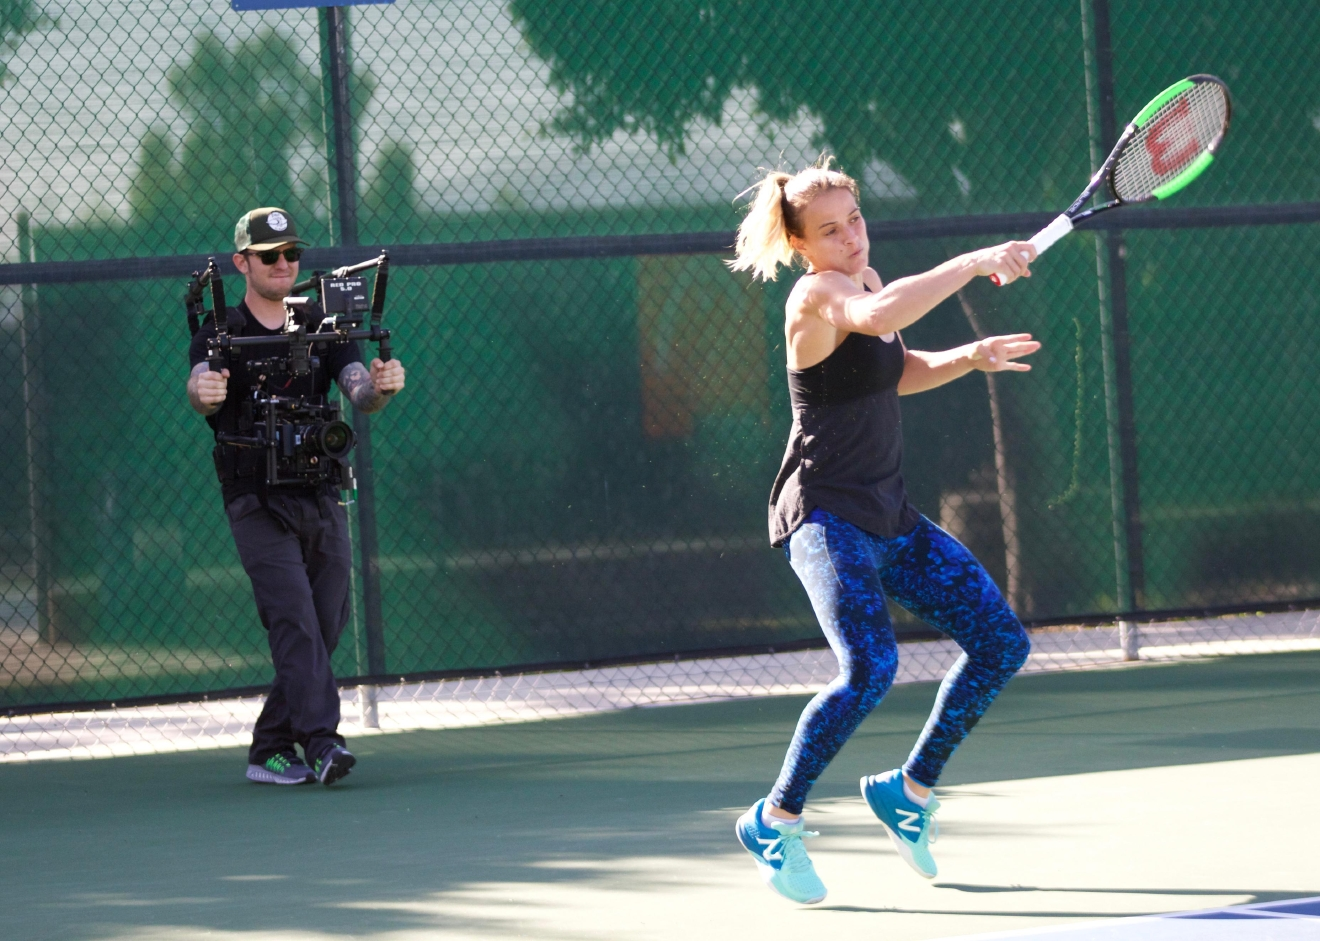 Nicole firing a forehand while shooting the 'My Tennis Life' trailer